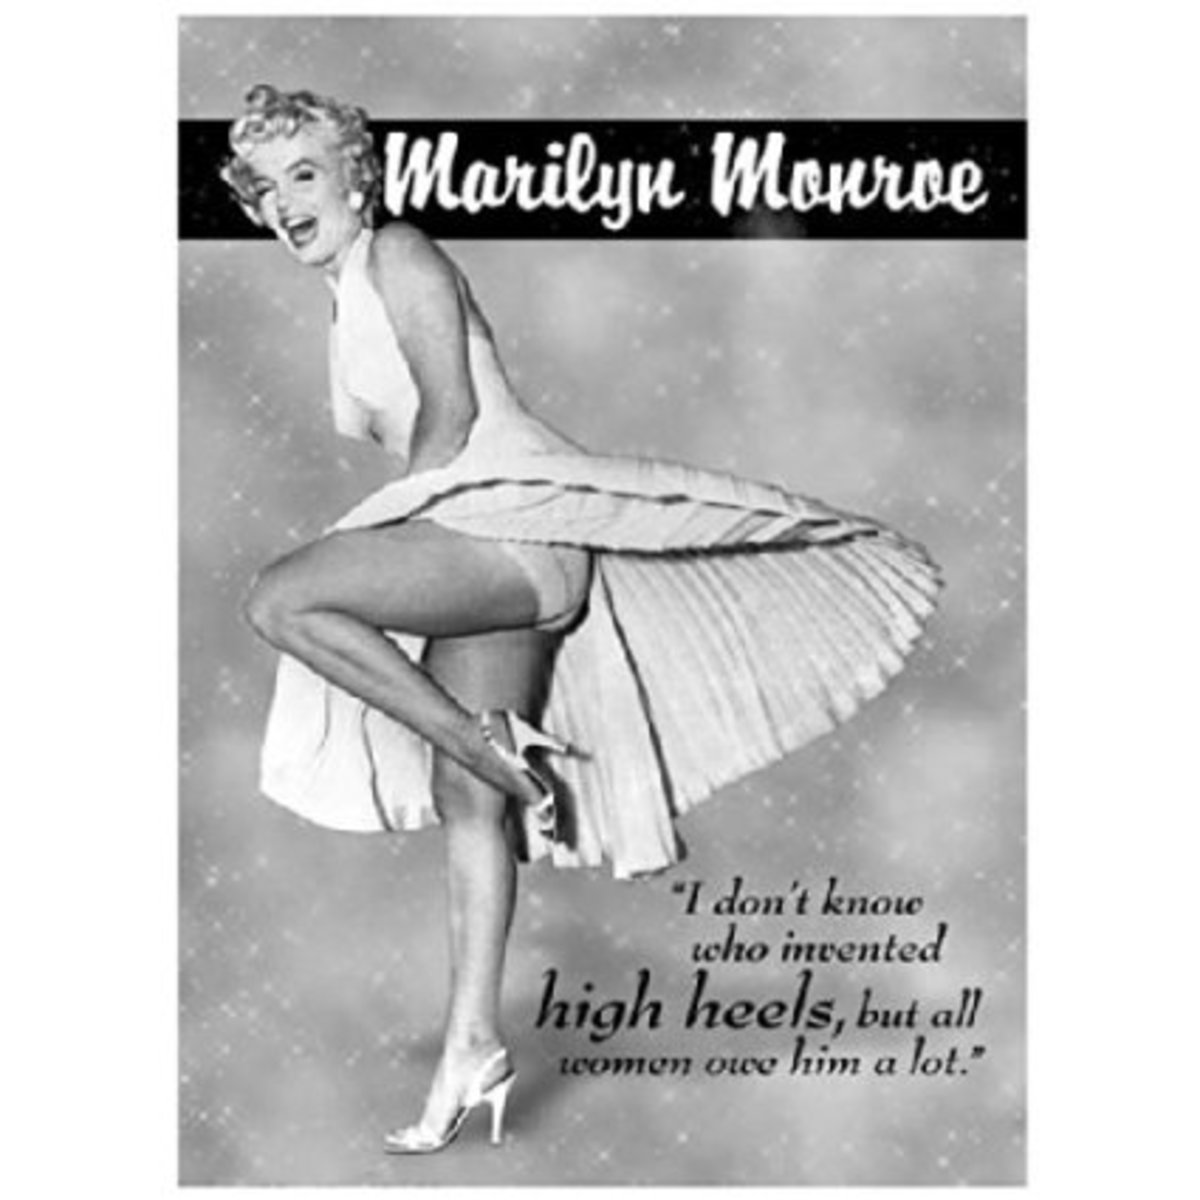 The iconic Marilyn pose in the white dress.